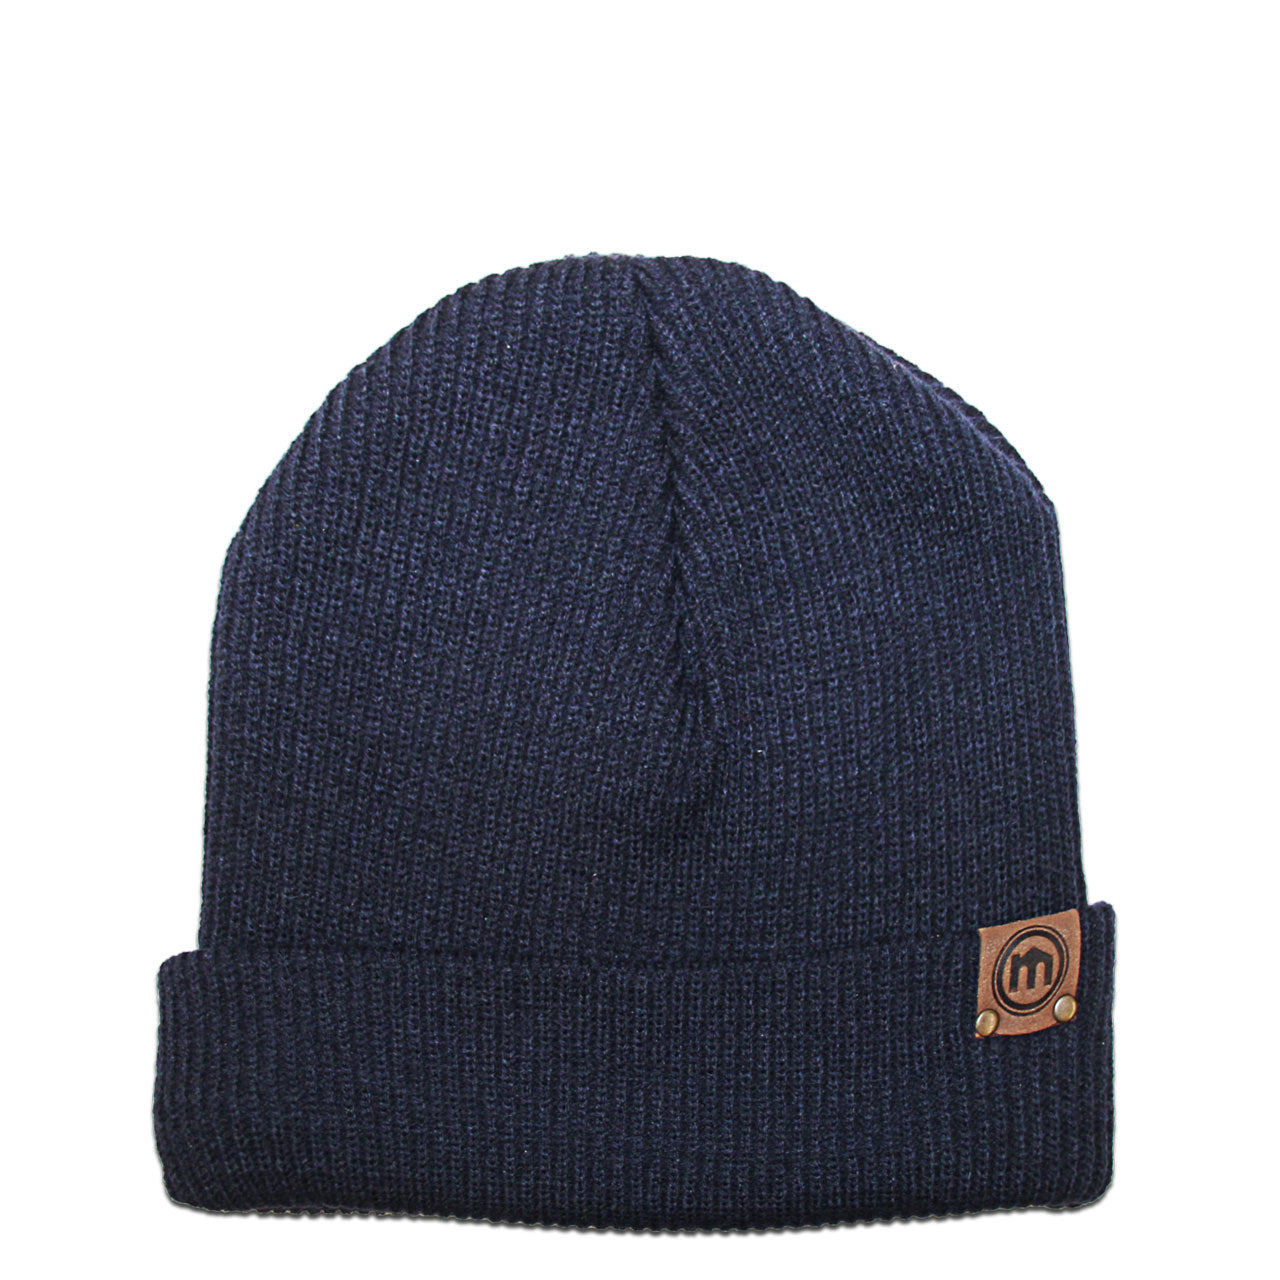 a0c8ee5f088 Beanies + Hats - Mitscoots Outfitters